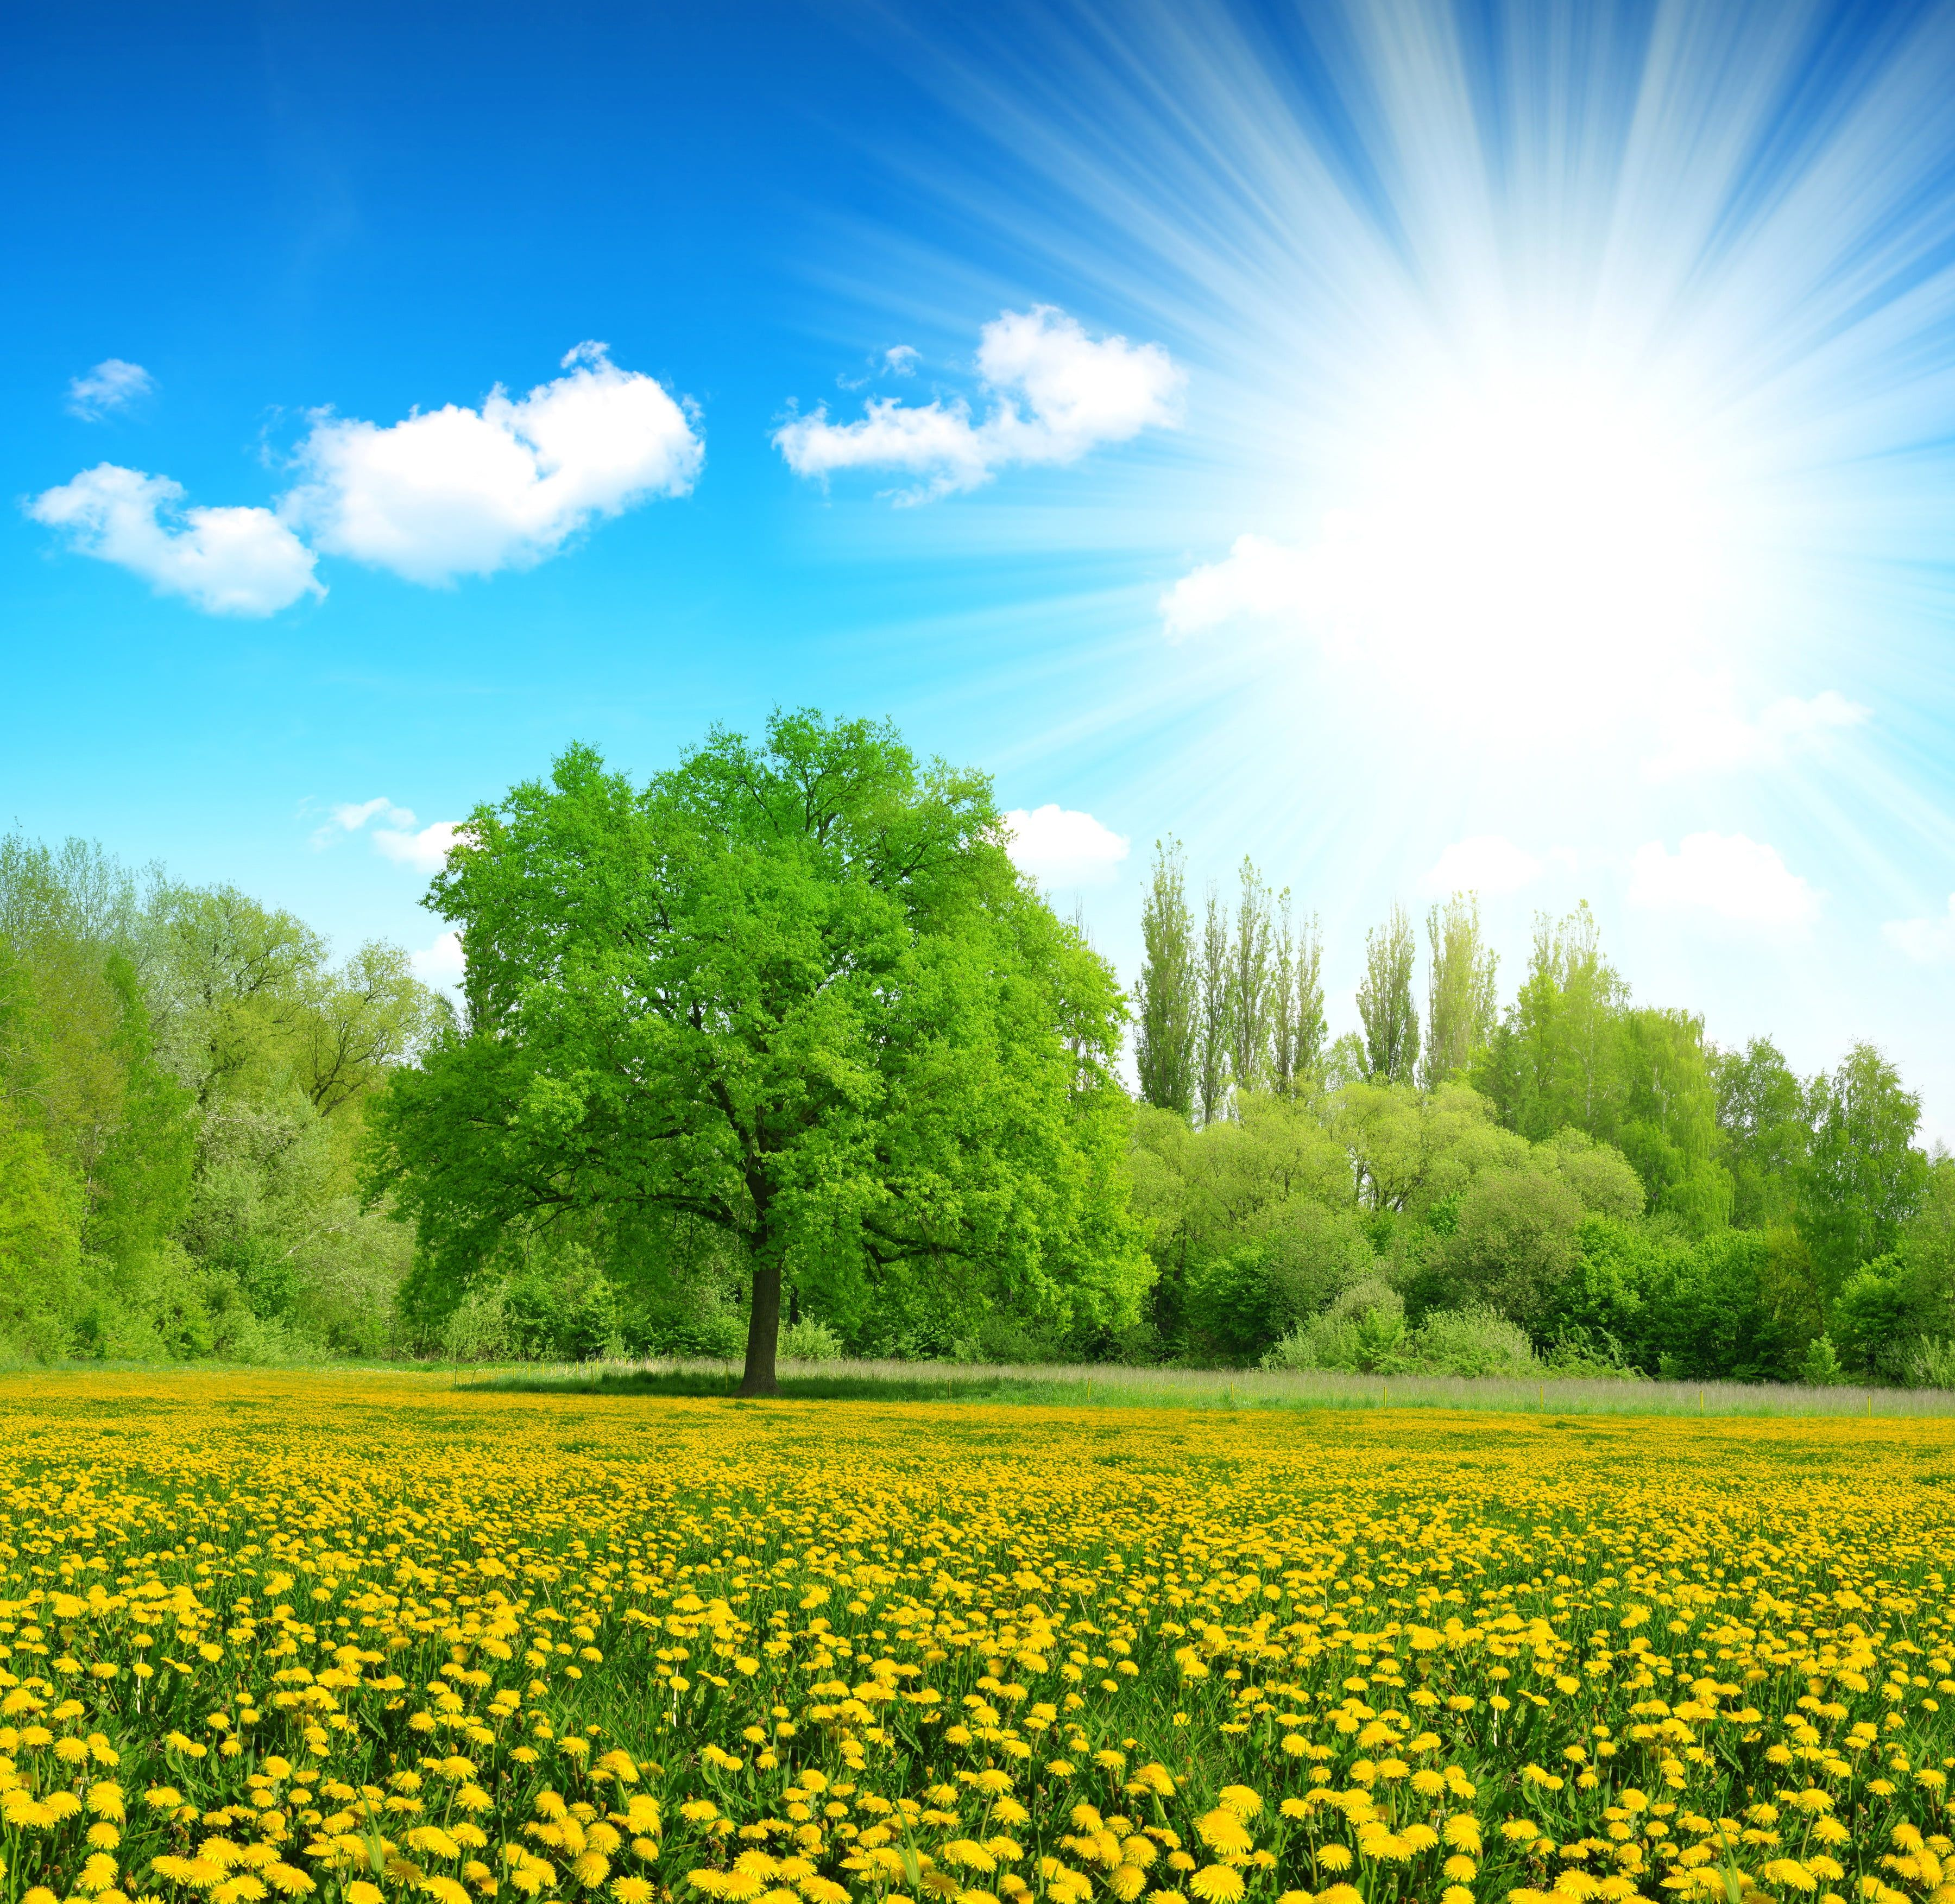 Green Tree Greens Summer The Sky The Sun Clouds Rays Trees Flowers Glade Yellow Beautiful Nature Pictures Beautiful Nature Beautiful Nature Wallpaper Beautiful landscape tree plants sun rays